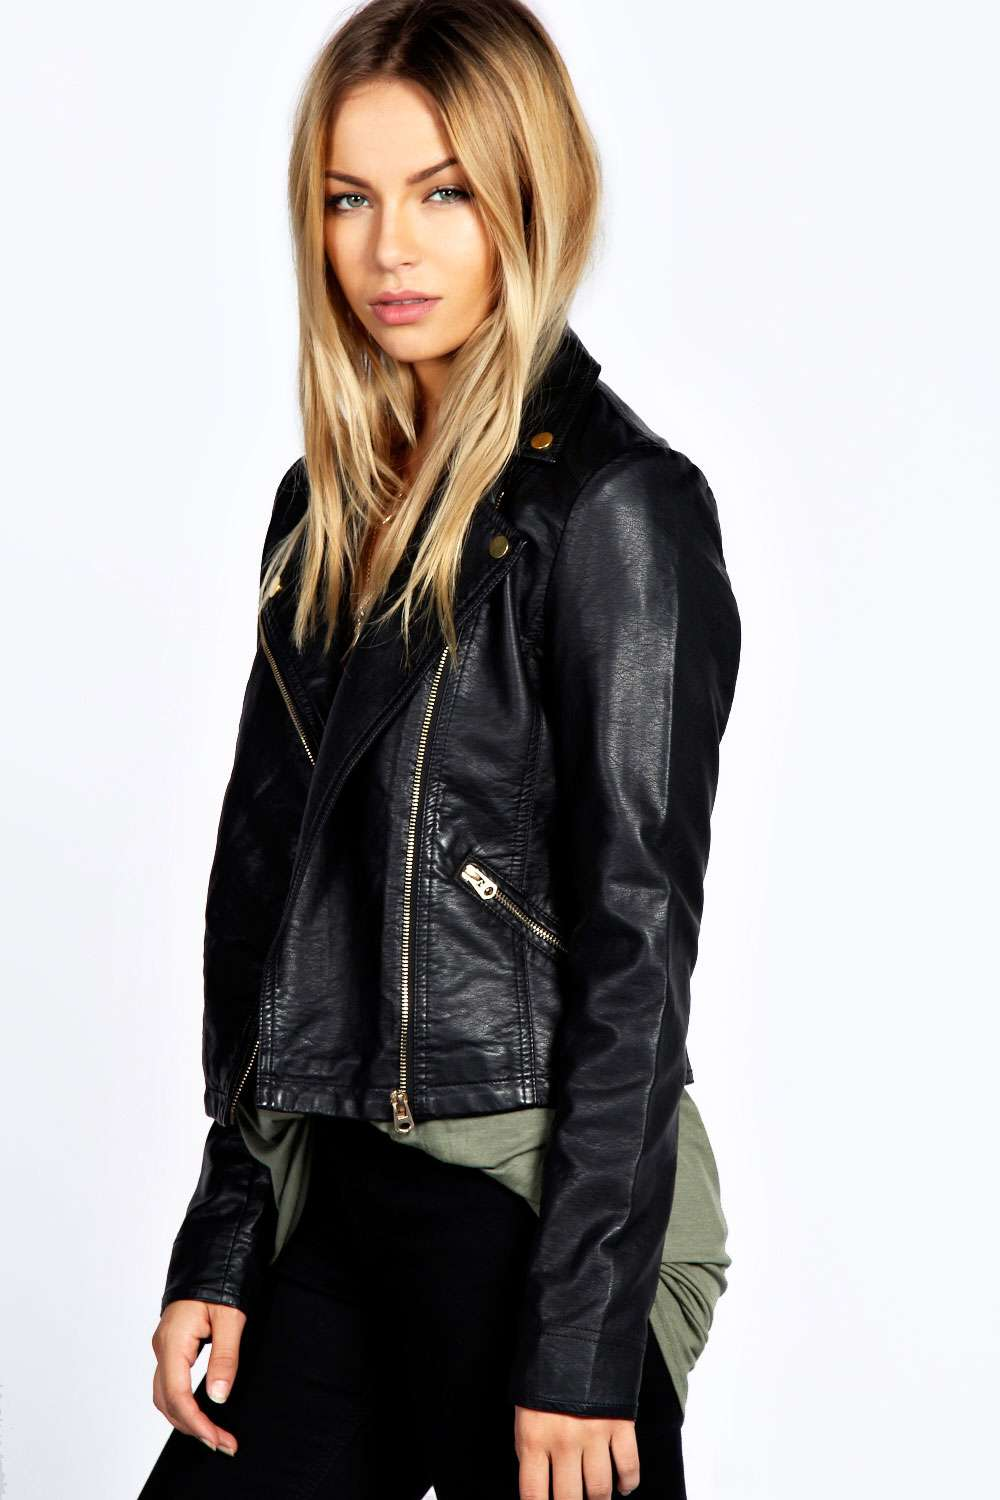 Leather jacket target - Womens Faux Leather Jacket Target